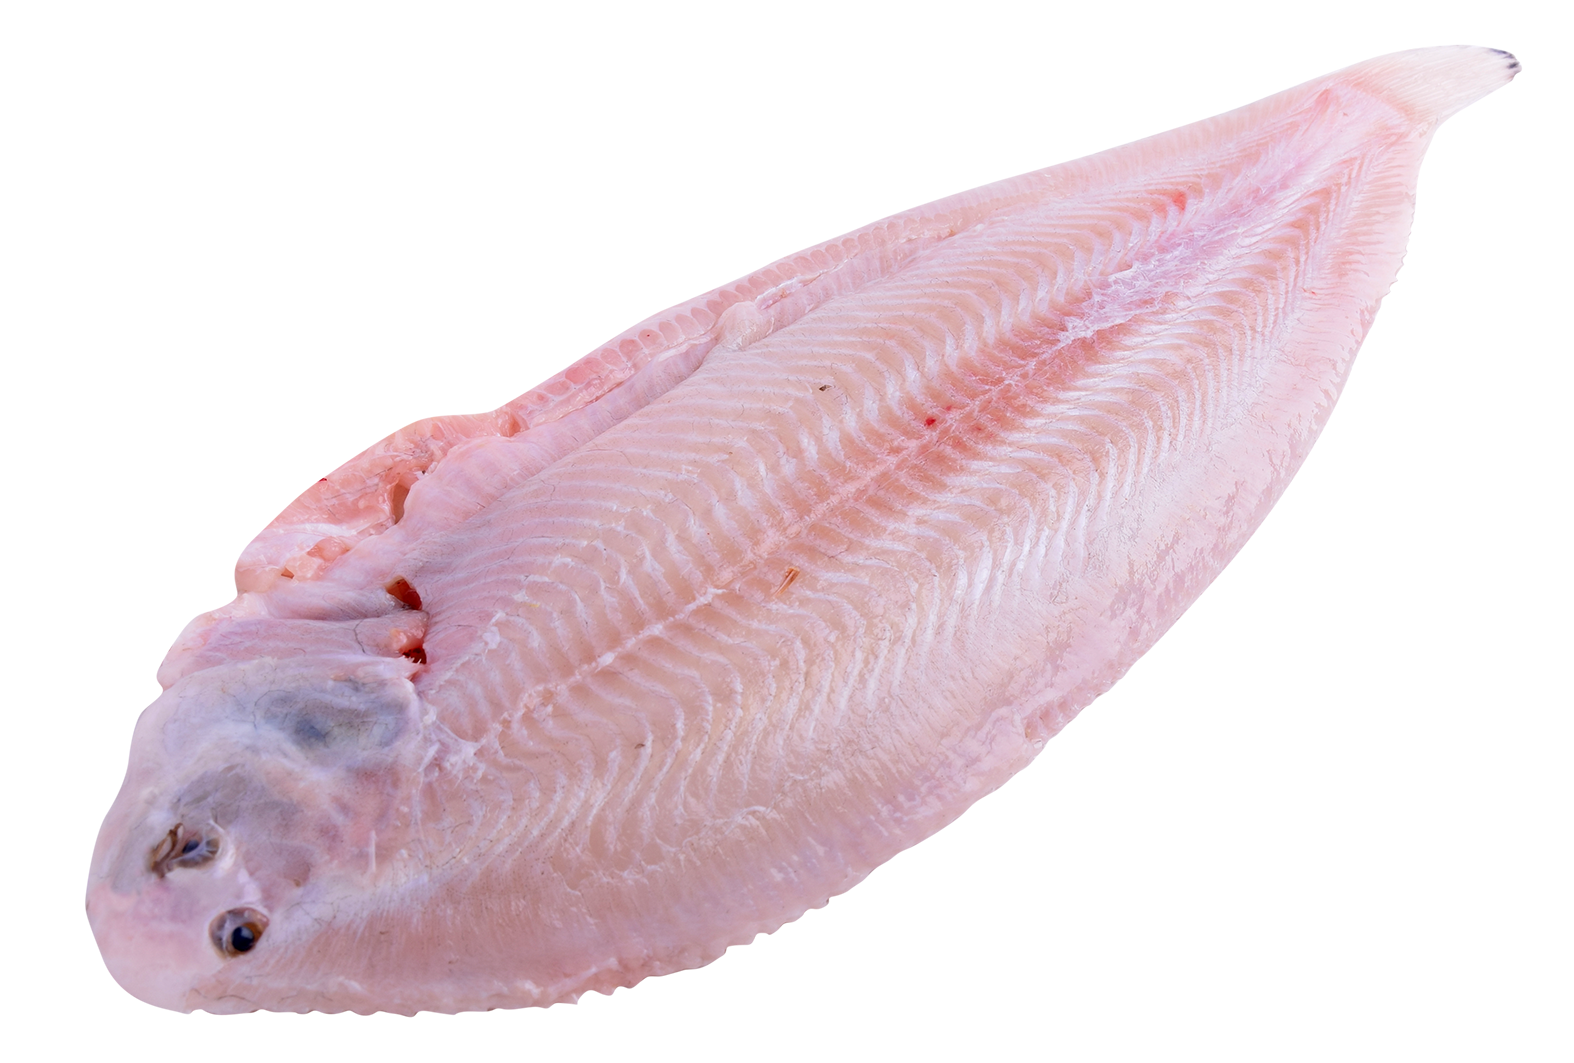 Productafbeelding DOVER SOLE SKINLESS SIZE 500-550GR